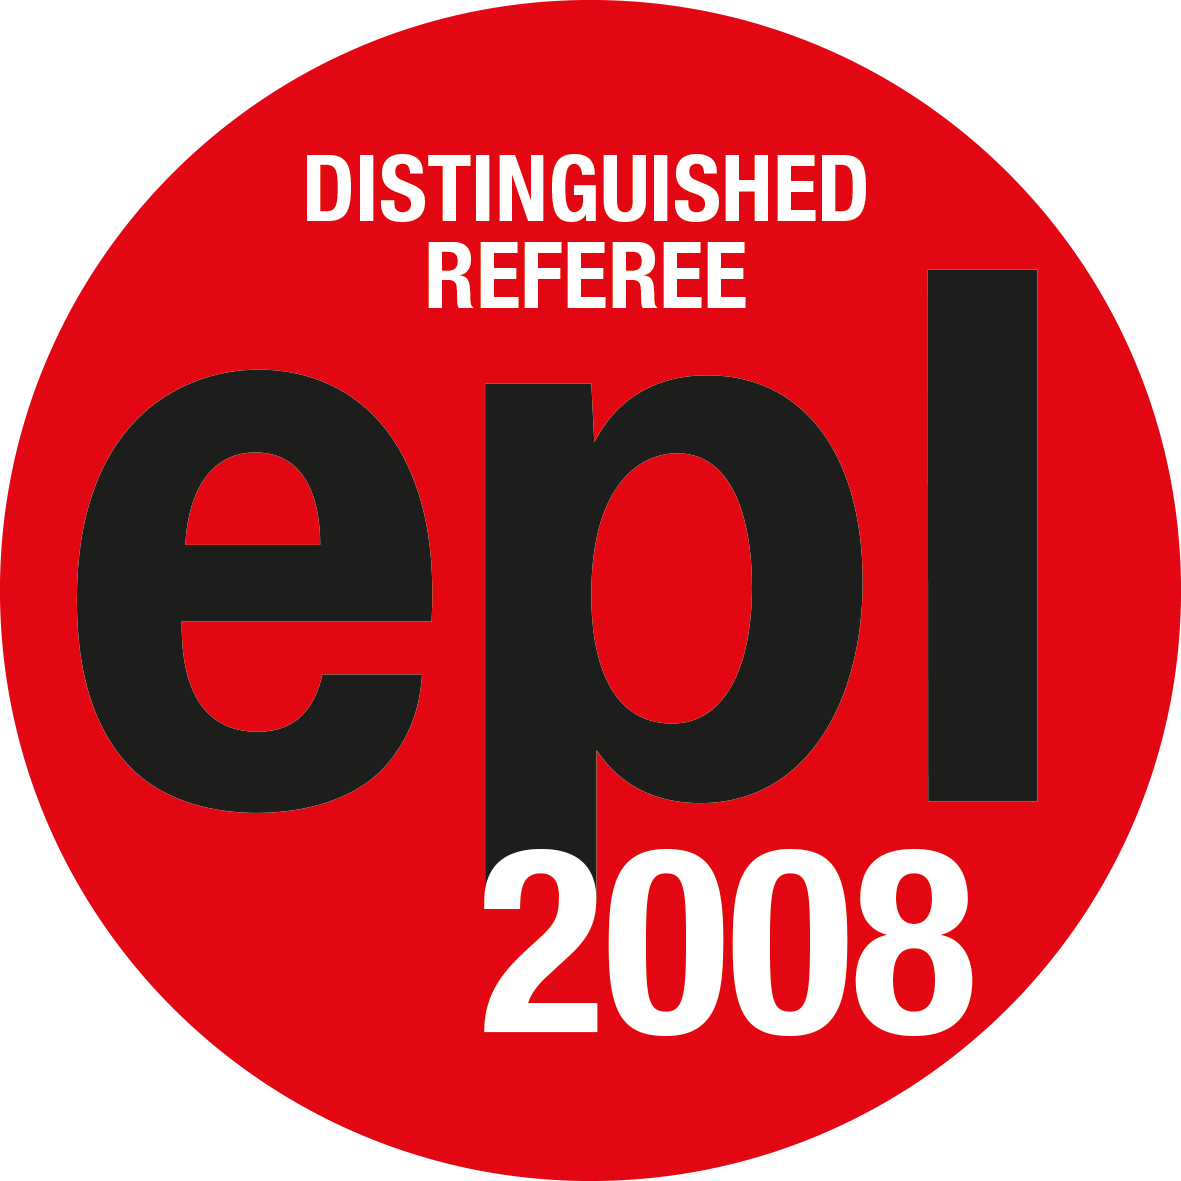 EPL Distinguished Referees 2008